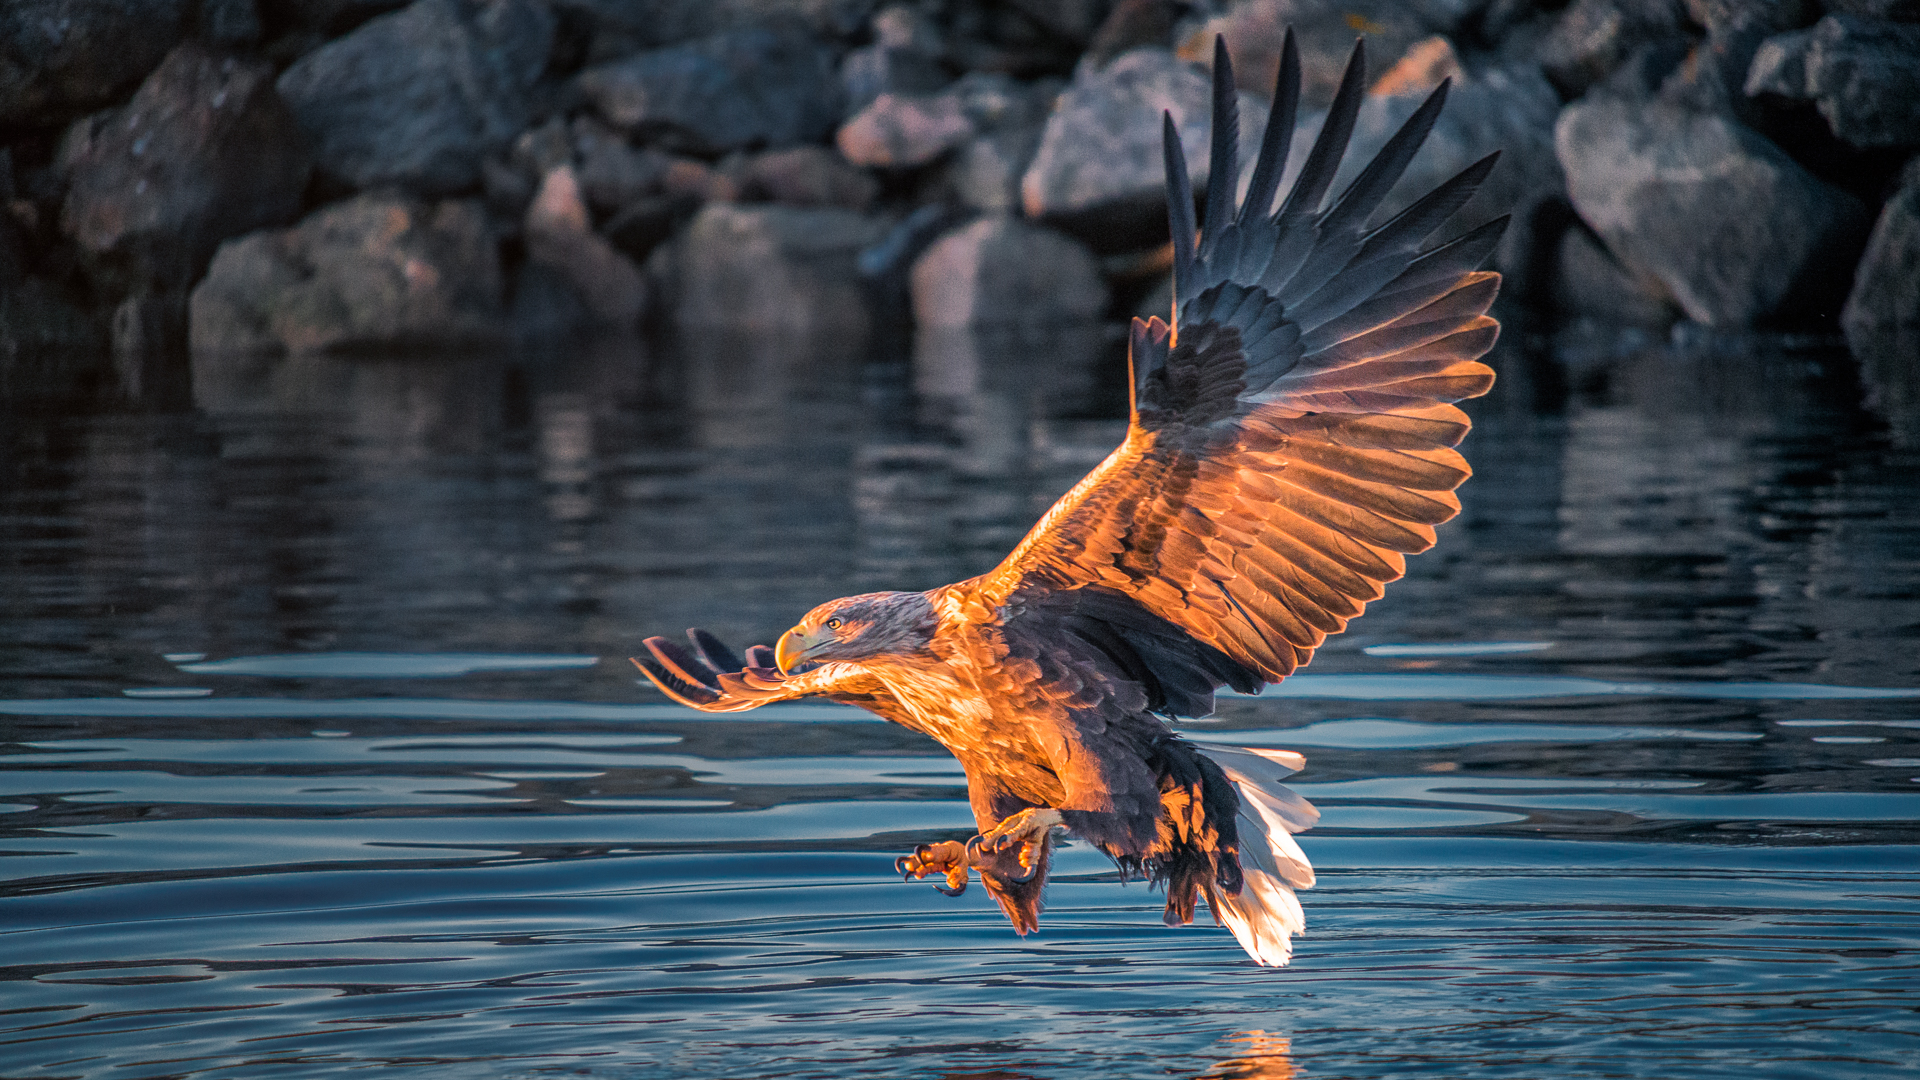 """White-tailed Eagle   In gaelic they call this Eagle """"IOLAIRE SULAIRE NA GREIN - EAGLE WITH THE SUNLIT EYE"""", isn't that beautiful? And fits to an old legend, translated of St. Augustine, which states that the eagle is the only animal which can look into the sun without getting hurt. """"The sun invigorates the eyes of eagles, but injures our own."""""""